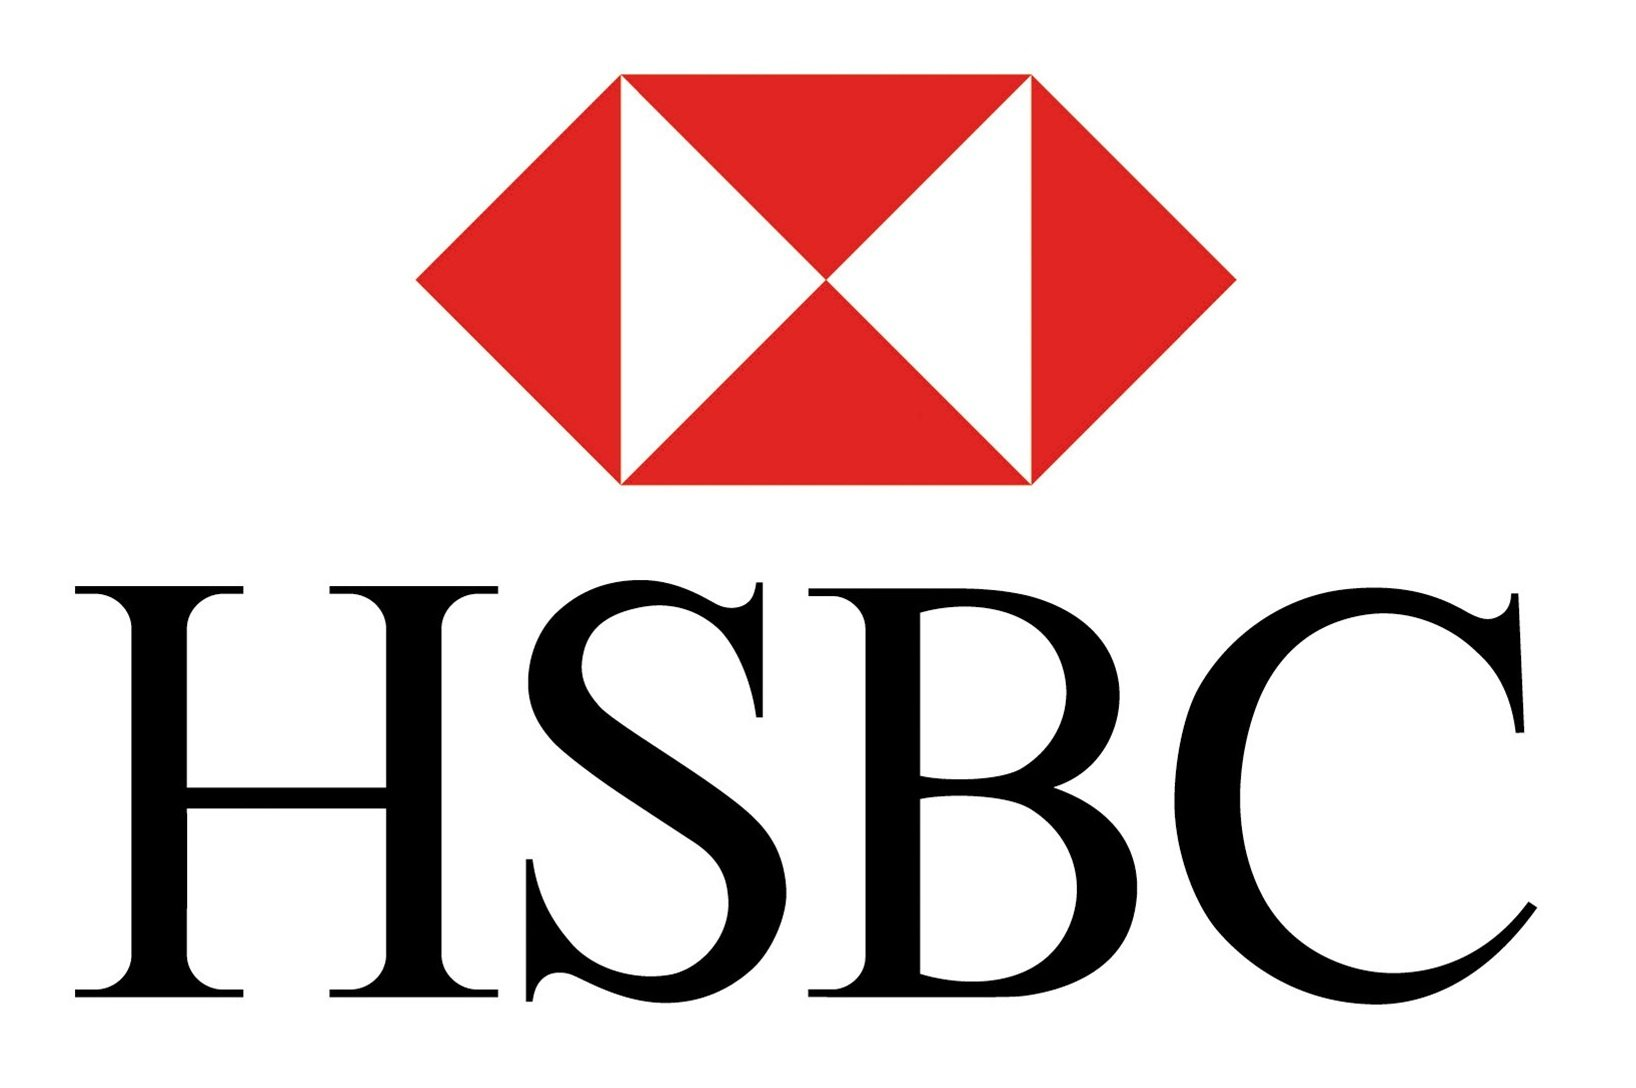 HSBC Contact Number Works Only Under These Conditions. Call 08700626720